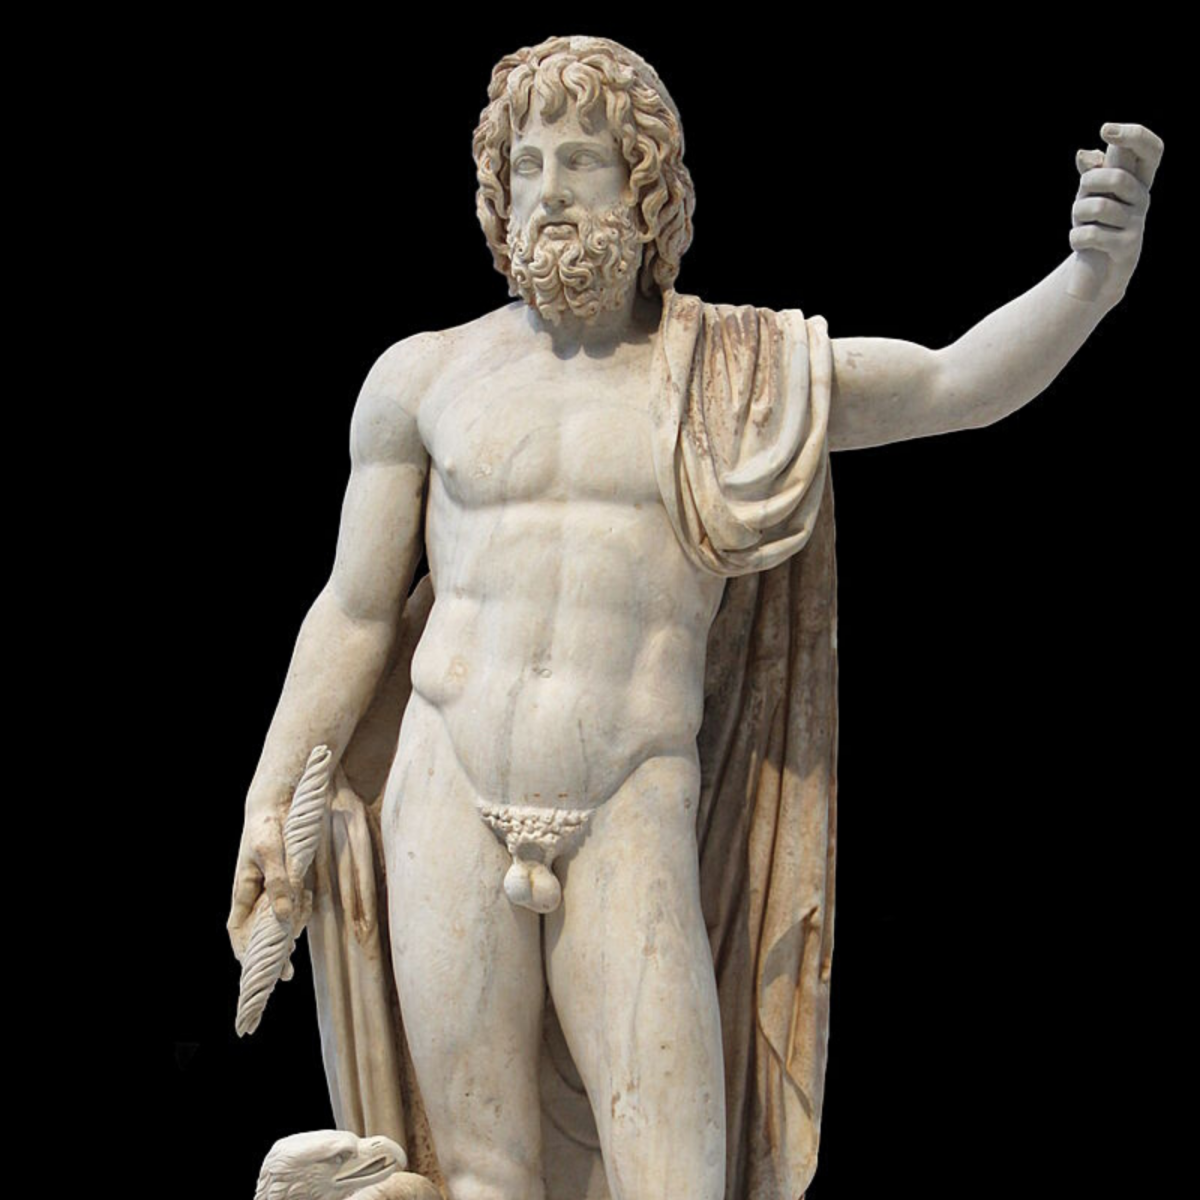 From its outset, a major part of the Latin Festival involved paying homage to Jupiter, the god of sky and thunder.